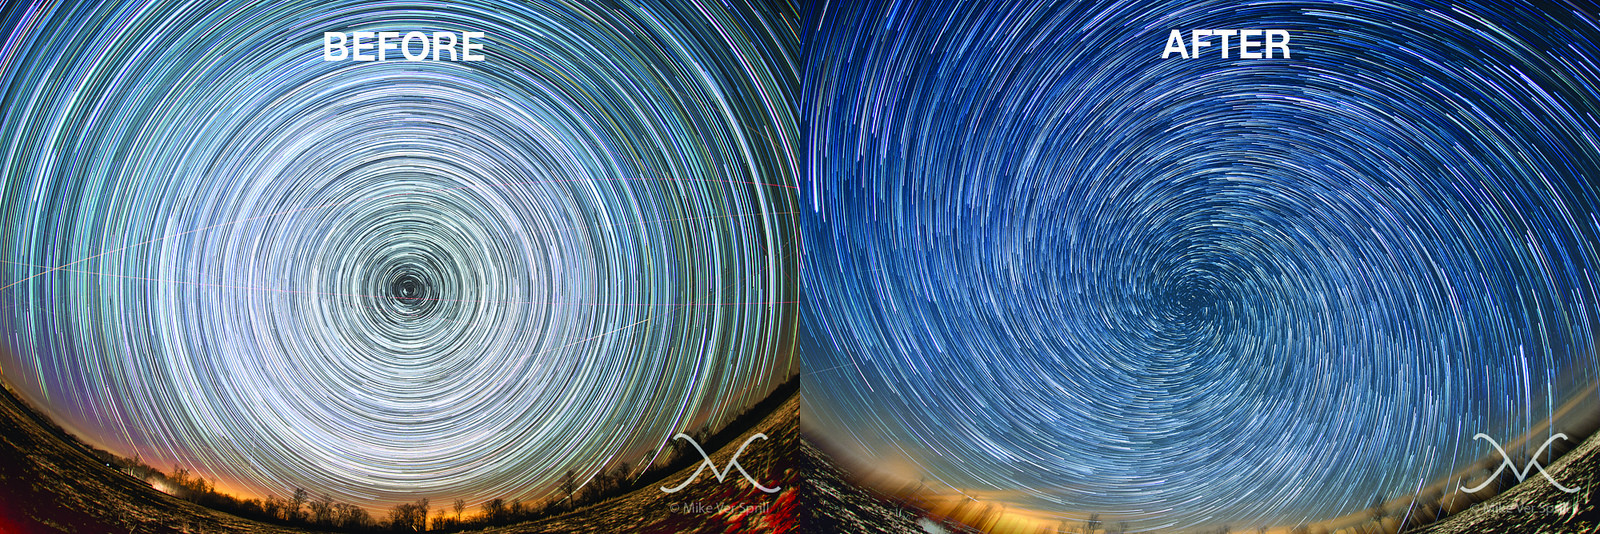 10 things you should not do in Time-lapse, by